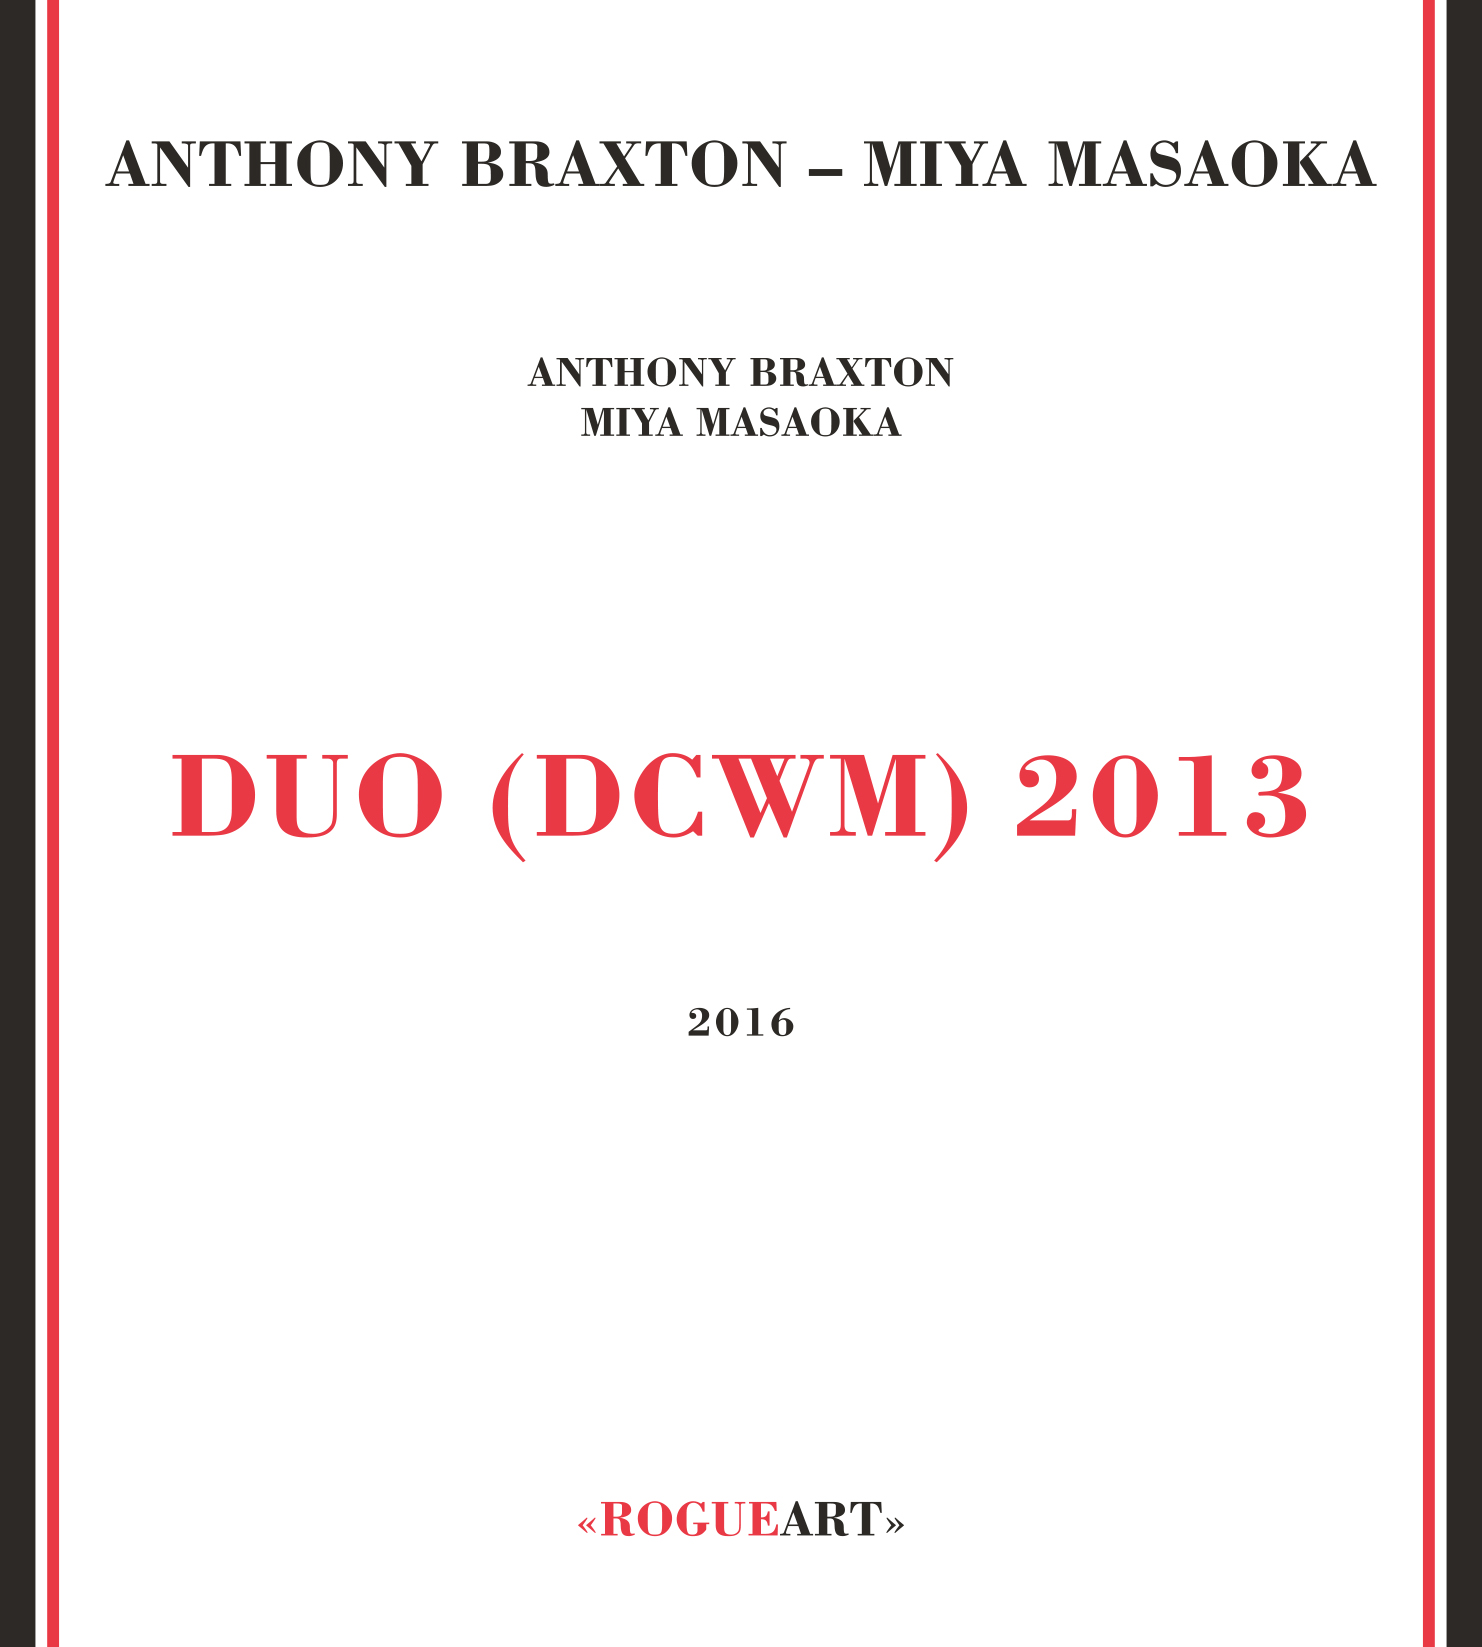 Front cover of the album DUO (DCWM) 2013